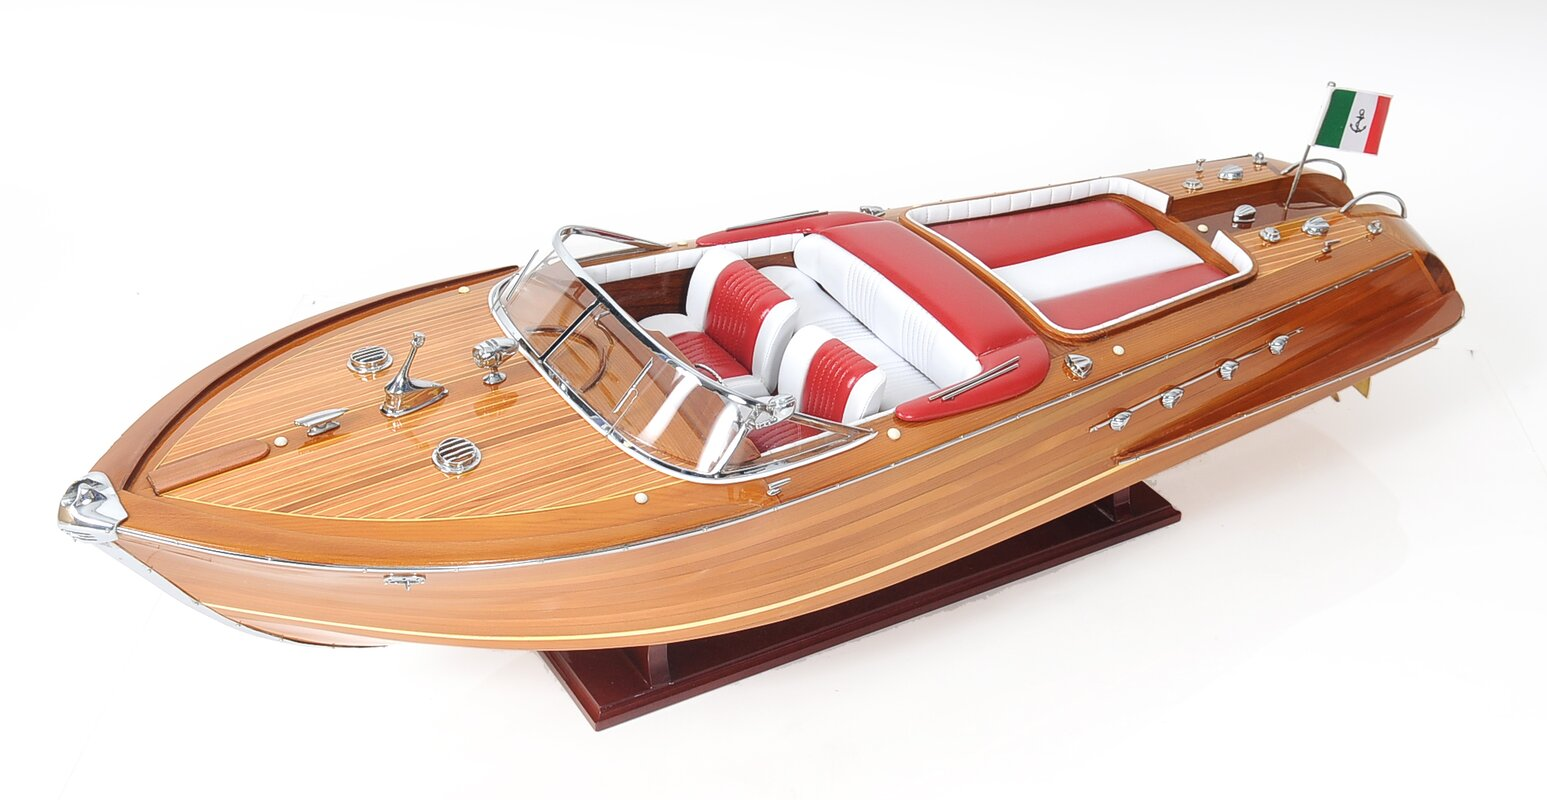 Riva Aquarama Exclusive Edition Model Boat